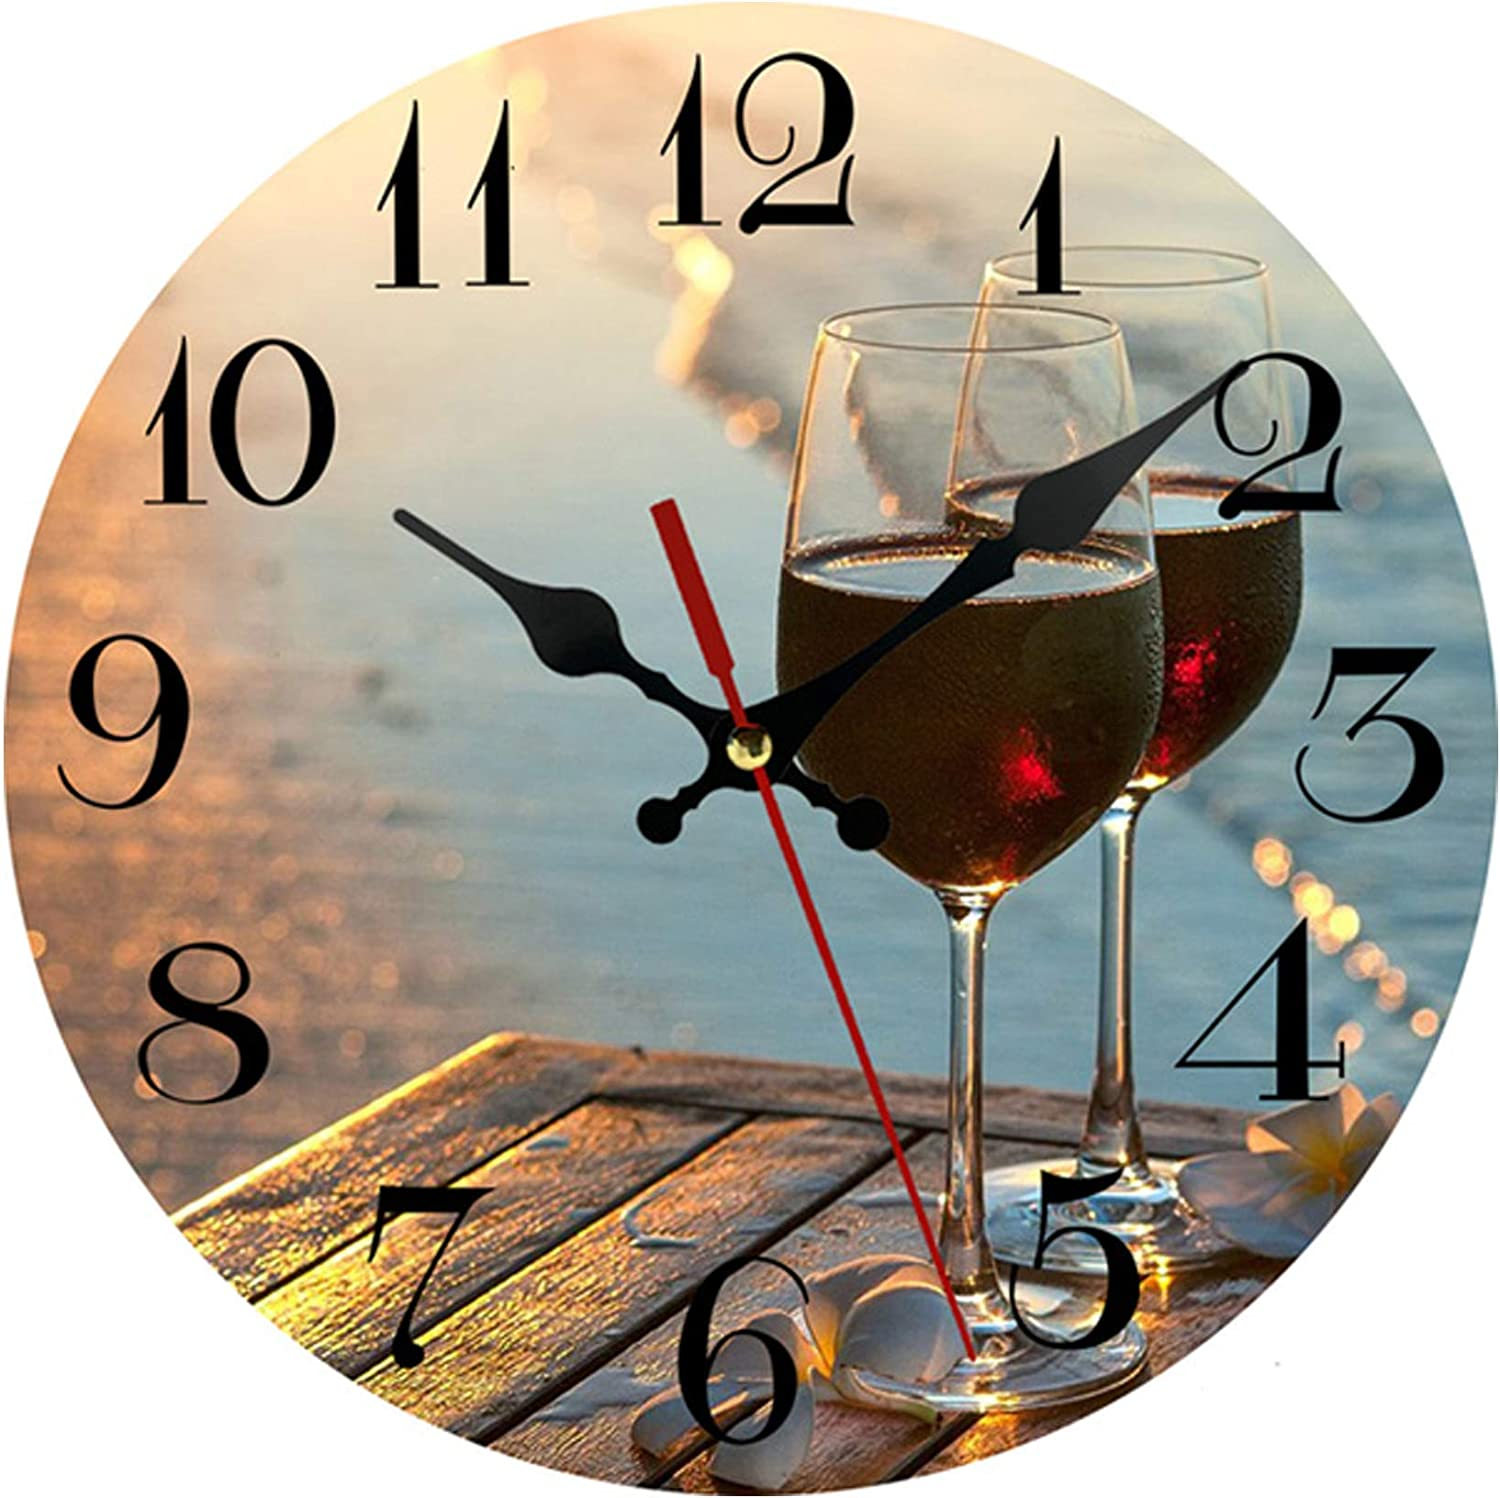 AMZBSR Silent Non-Ticking Wooden Decorative Round Wall Clock Quality Quartz Battery Operated Wall Clocks Vintage Country Style Home Decor Round Wall Clock(10 Inch, Romantic Red Wine at Beach Sunset)